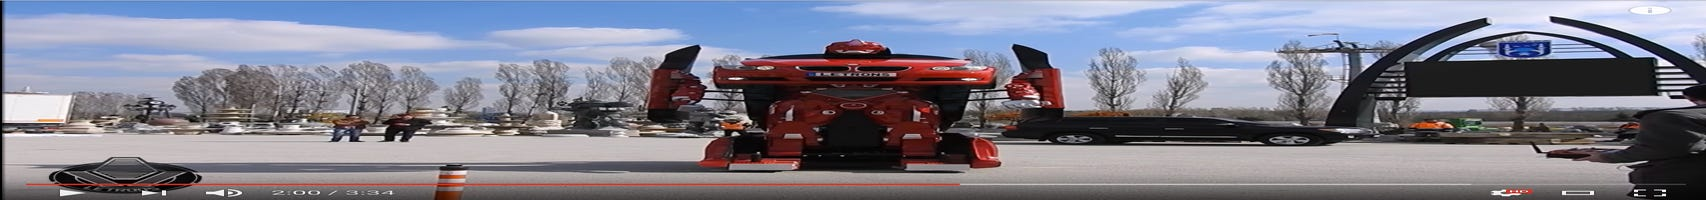 Video: Real-life Transformer built by Turkish company